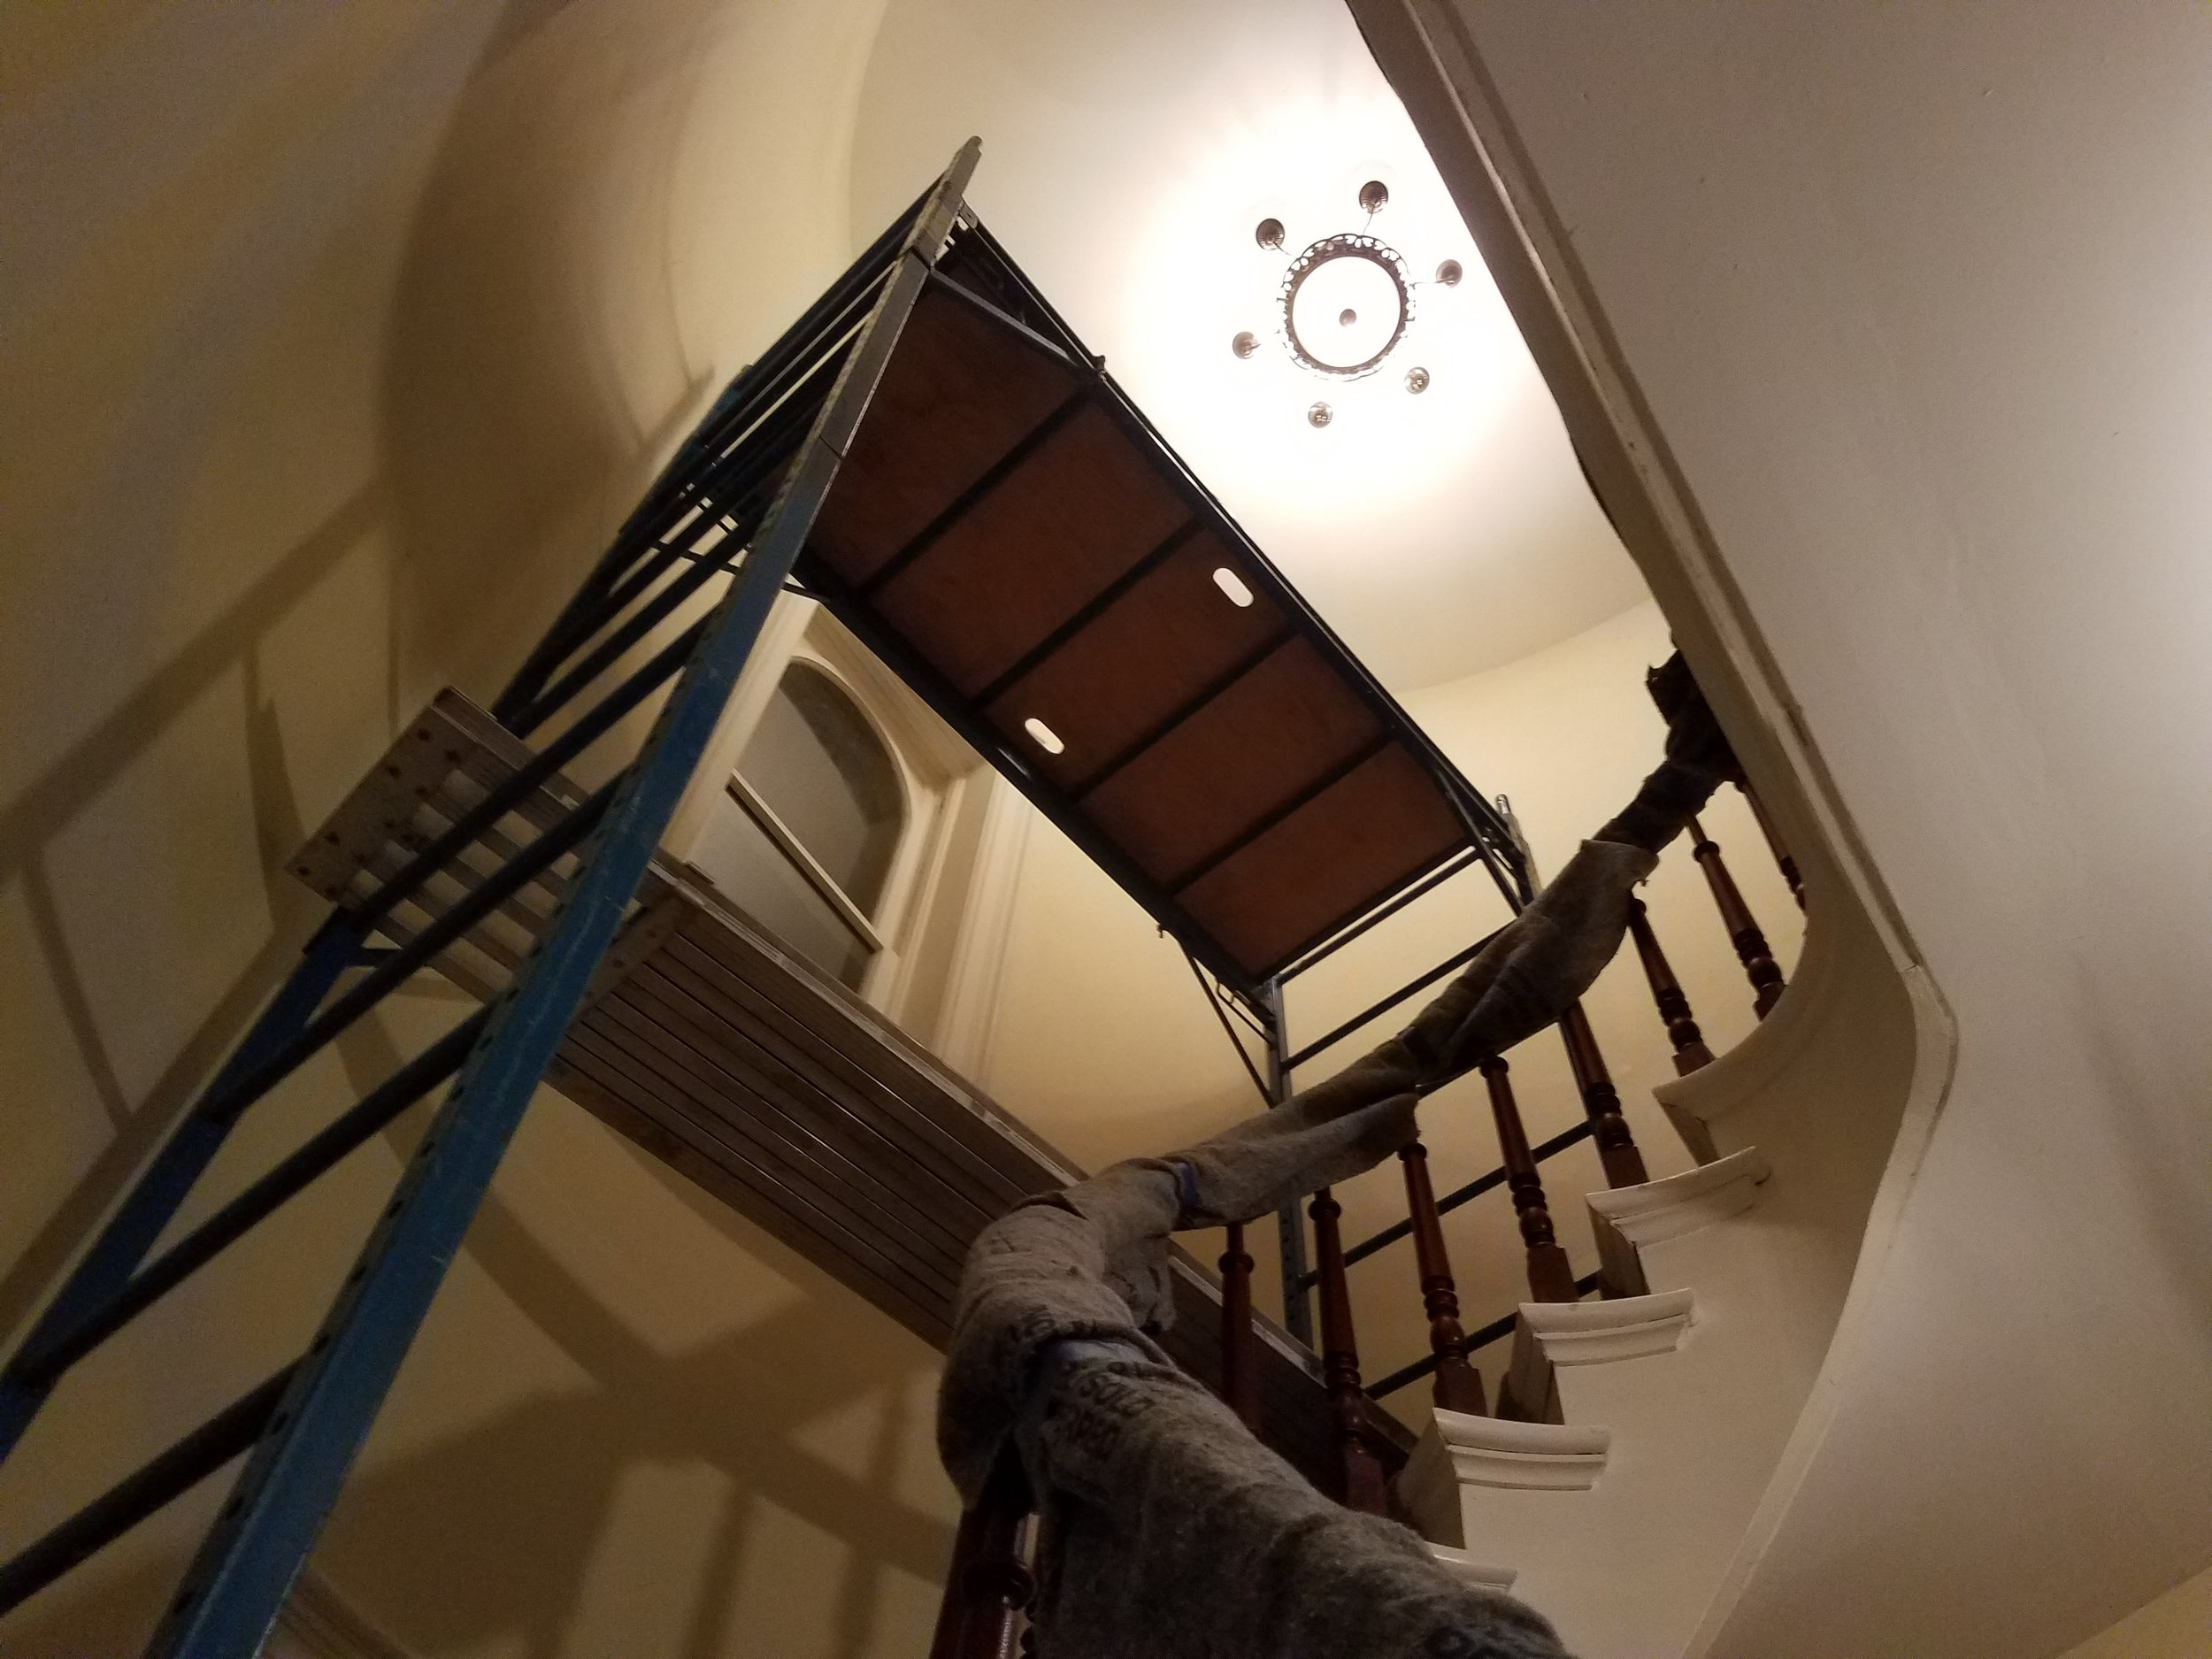 Scaffolding on a curved staircase can be spooky.